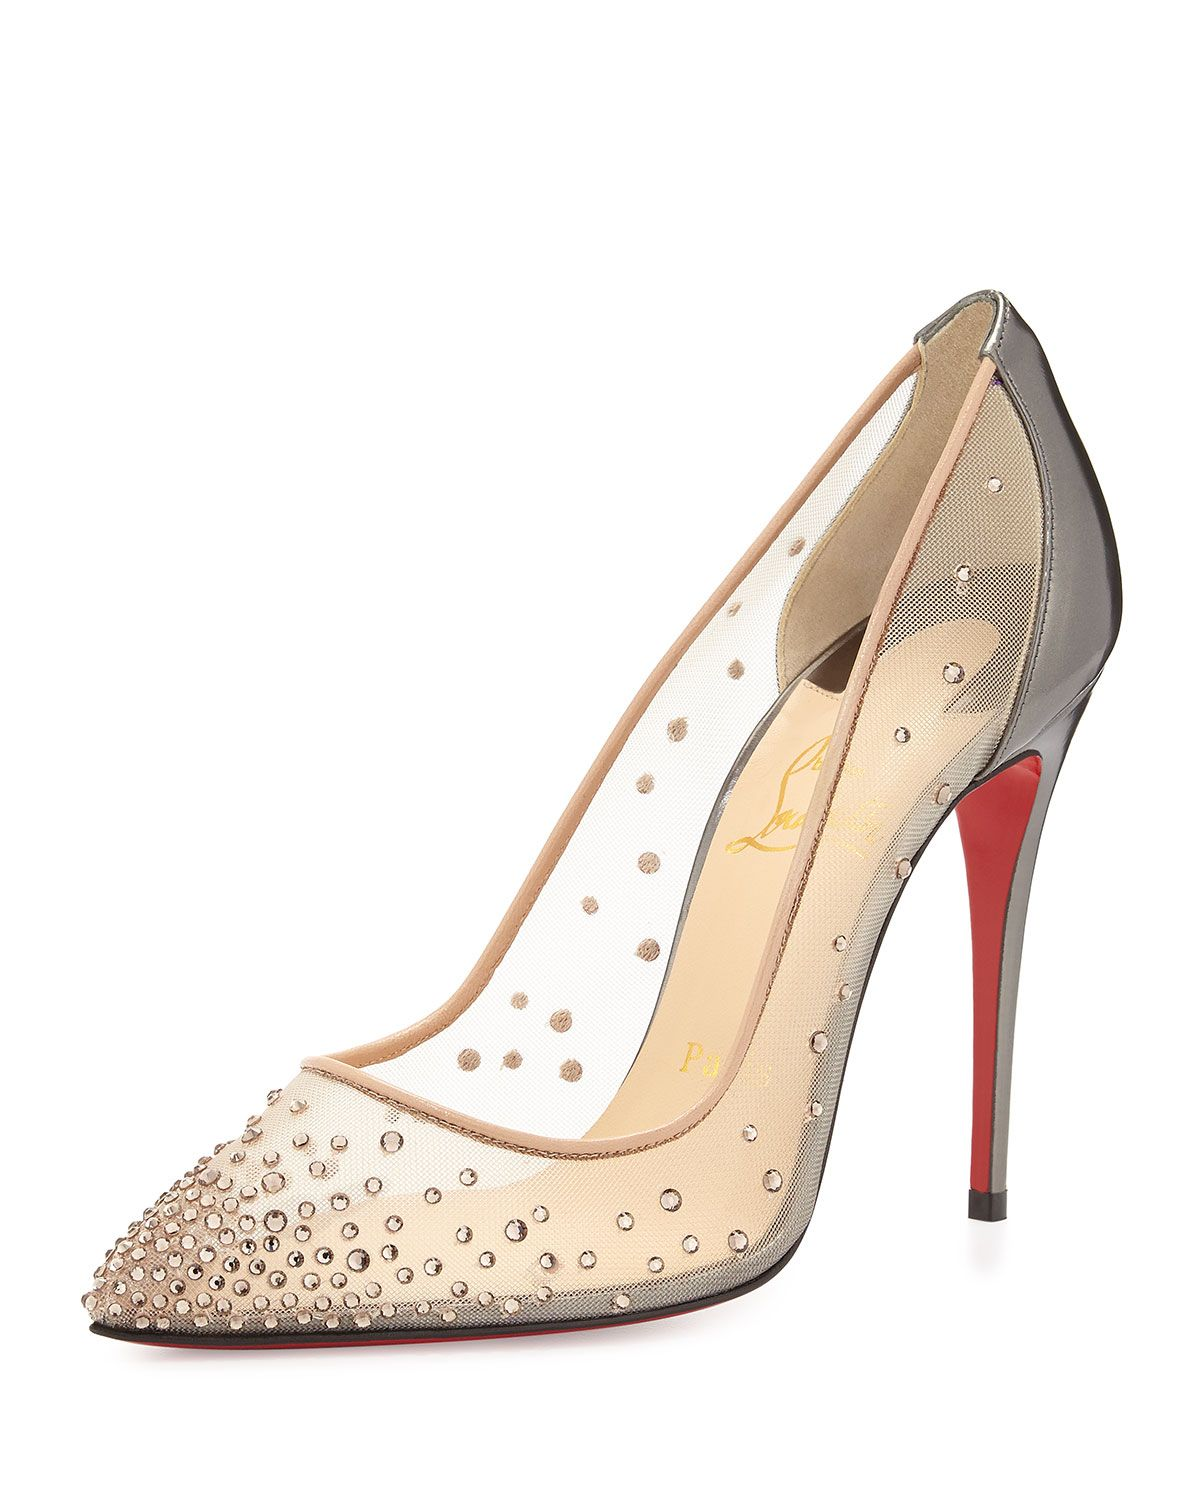 0b4a0ed4cd3 Follies Crystal Mesh Red Sole Pump Silver/Nude | Shoes | Silver high ...